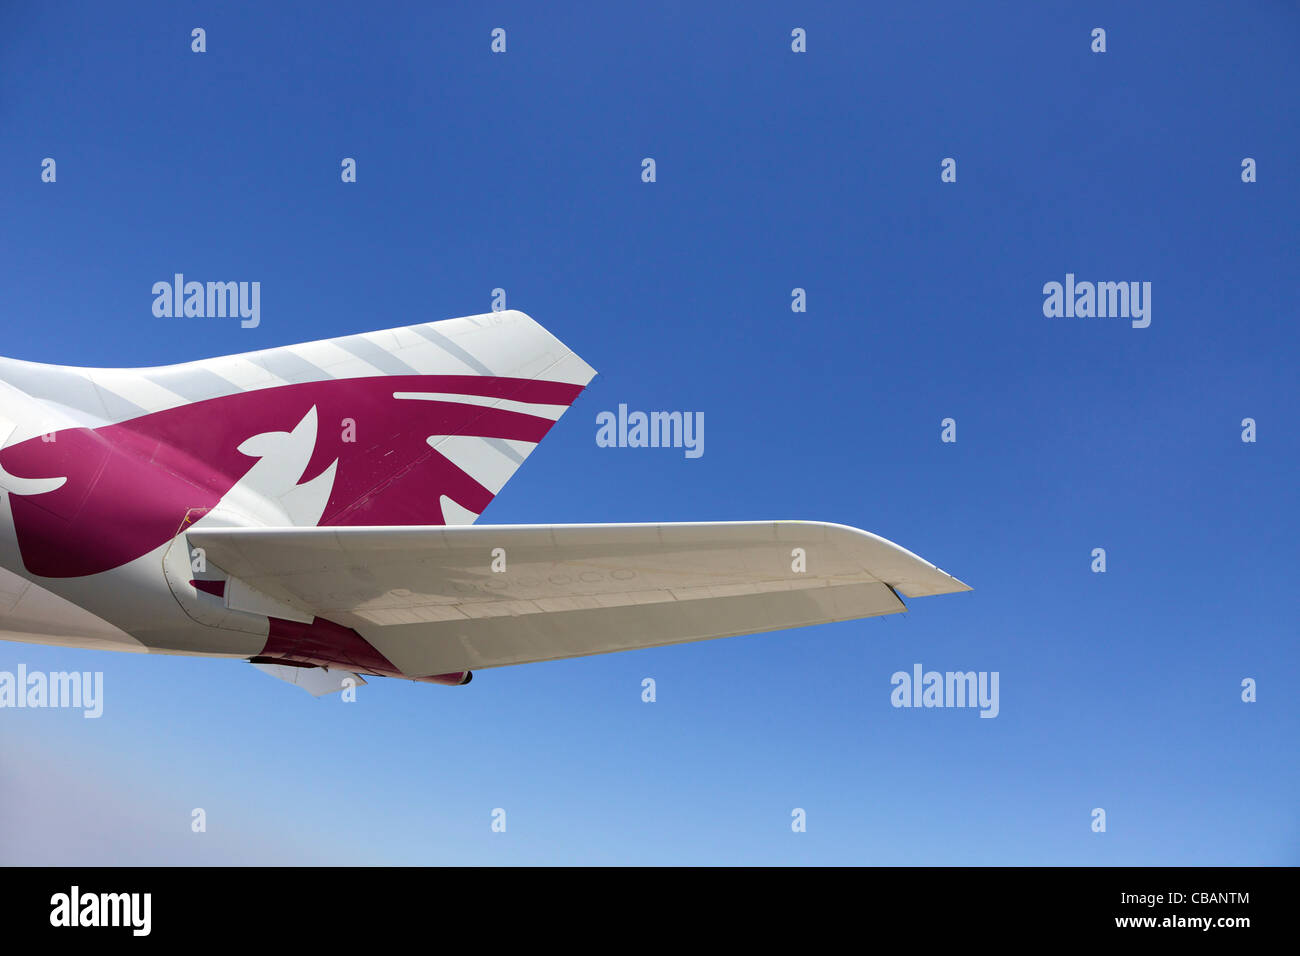 Qatar airliner tailfin at Doha International Airport, Qatar, Middle East - Stock Image